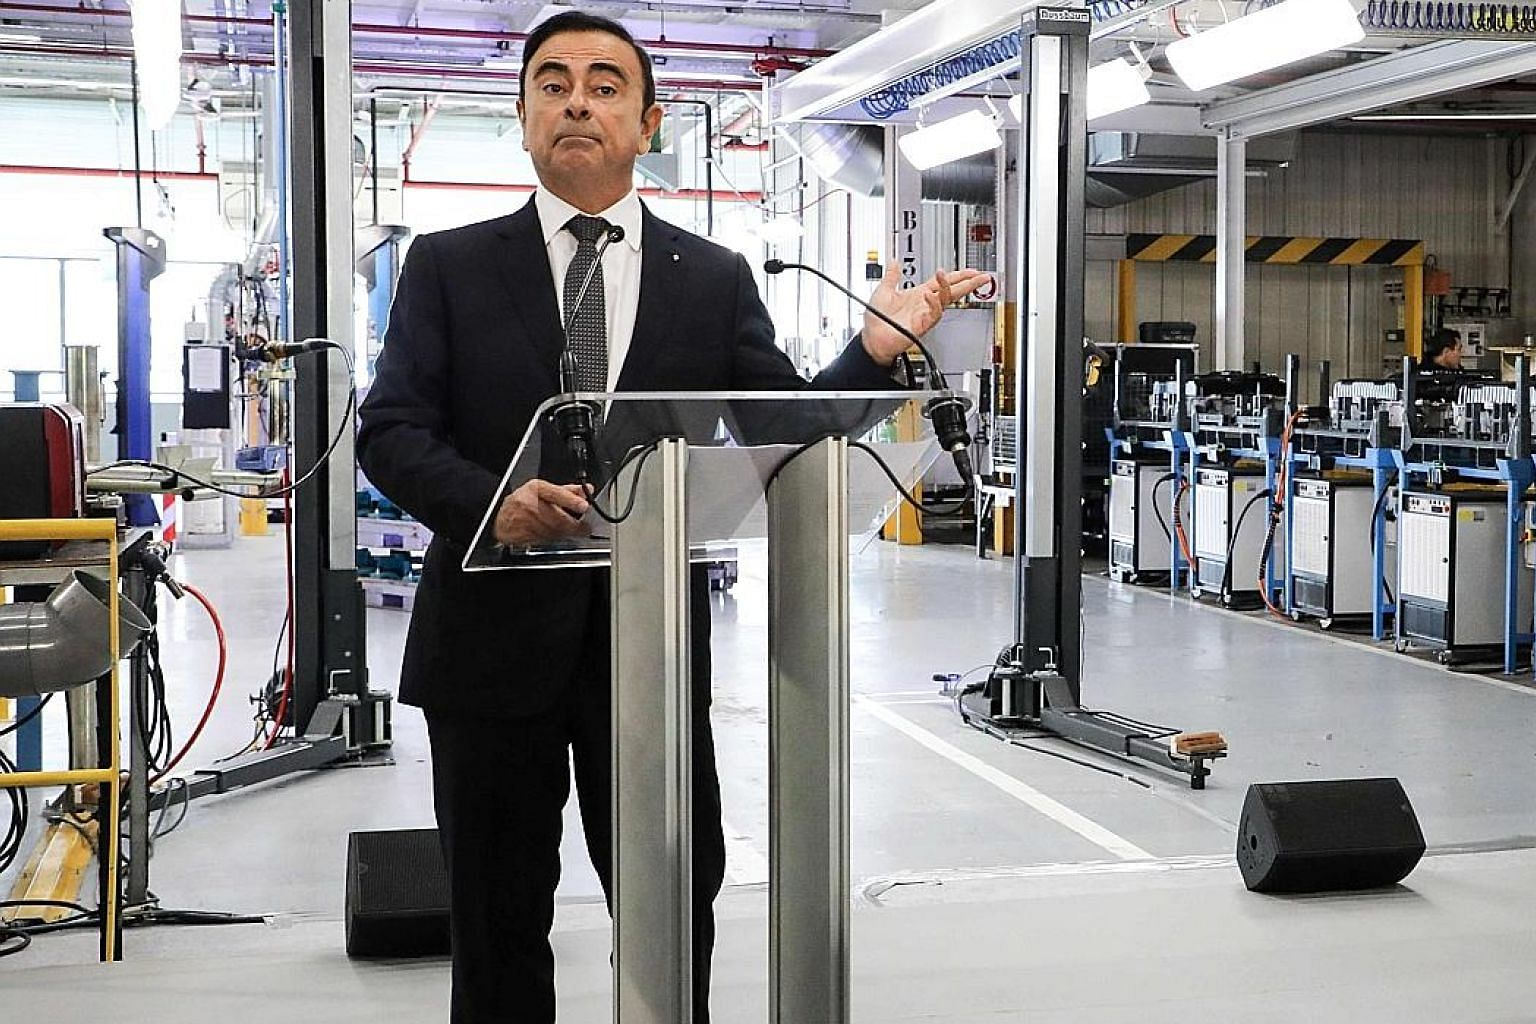 Mr Carlos Ghosn, chairman of both Nissan and Renault, speaking at the Renault factory in Maubeuge, in northern France, earlier this month. He has since been arrested by the Japanese police for financial misconduct.